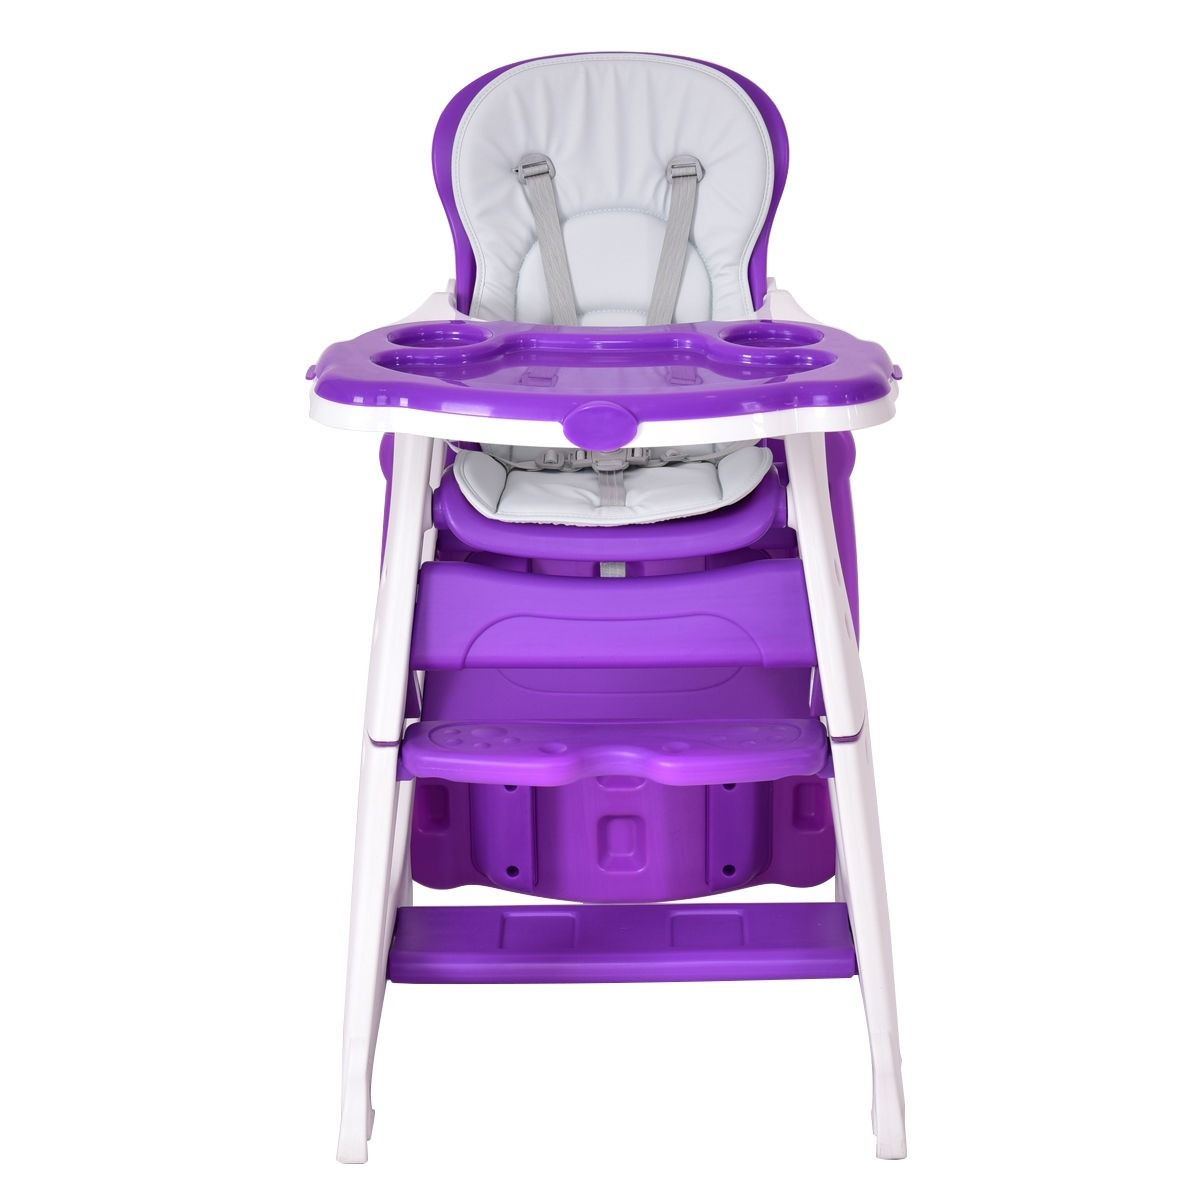 3 In 1 Infant Table And Chair Set Baby High Chair Baby High Chair High Chair Chair